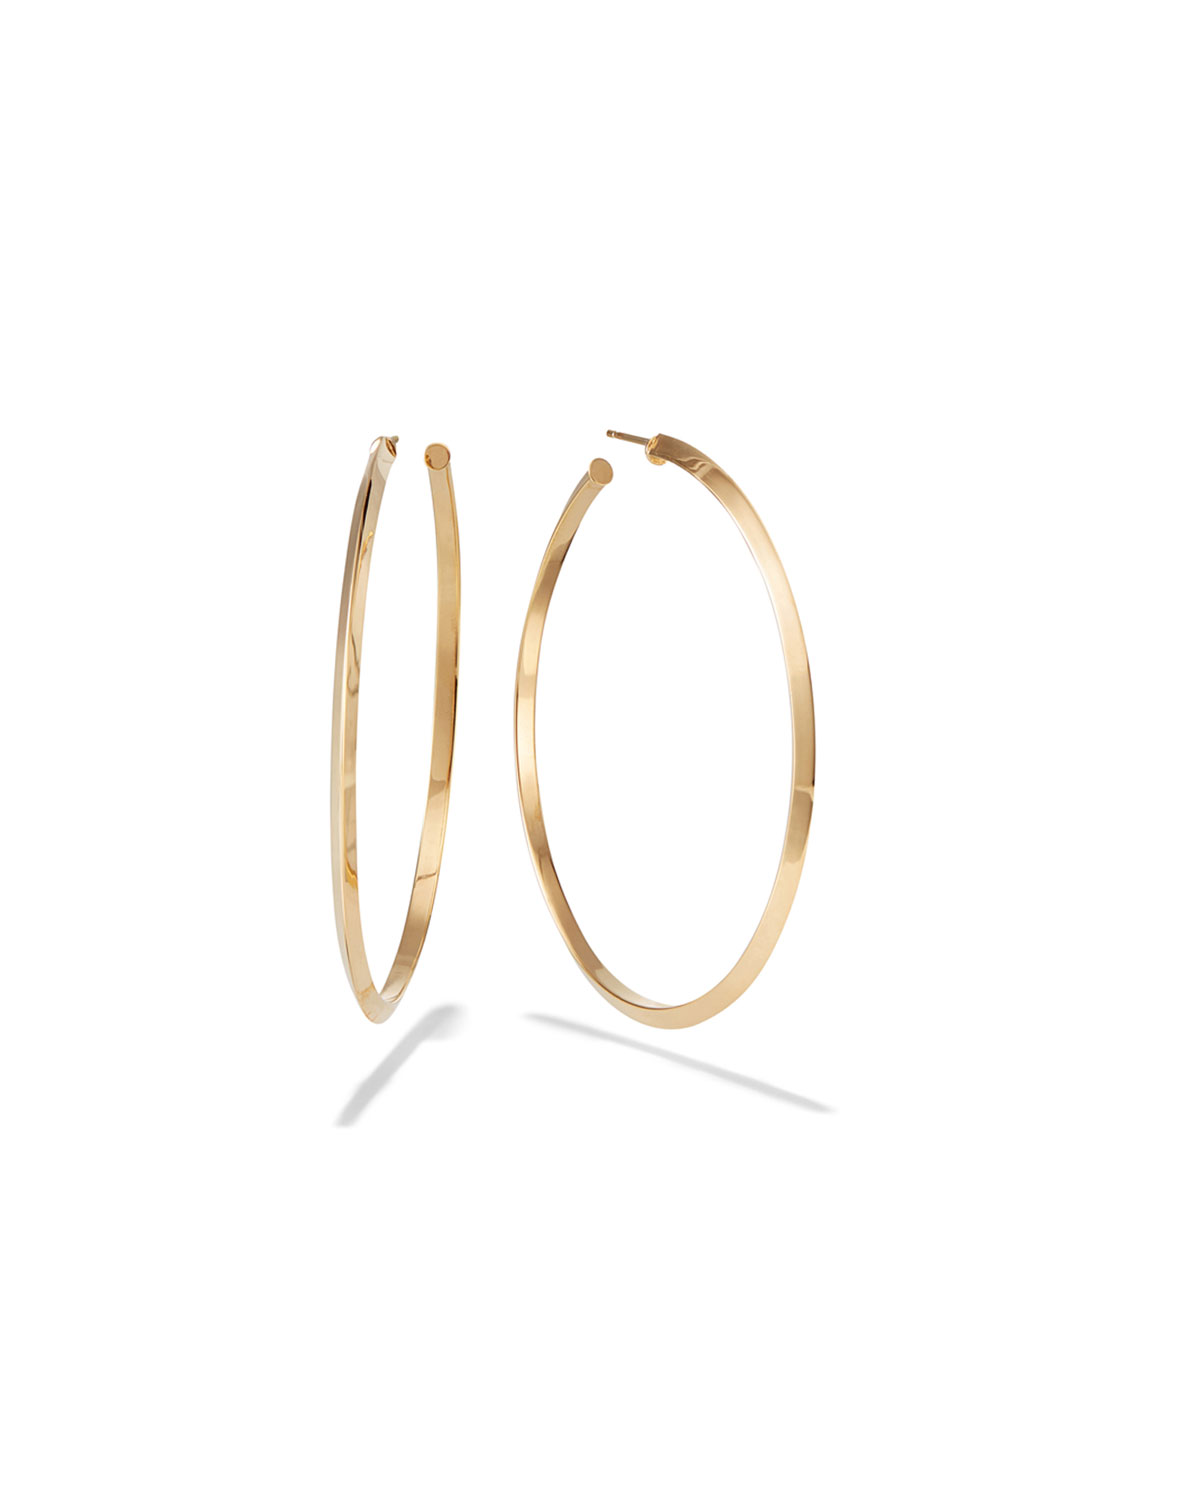 Lana  HOLLOW 14K GOLD HOOP EARRINGS W/ DIAGONAL EDGES